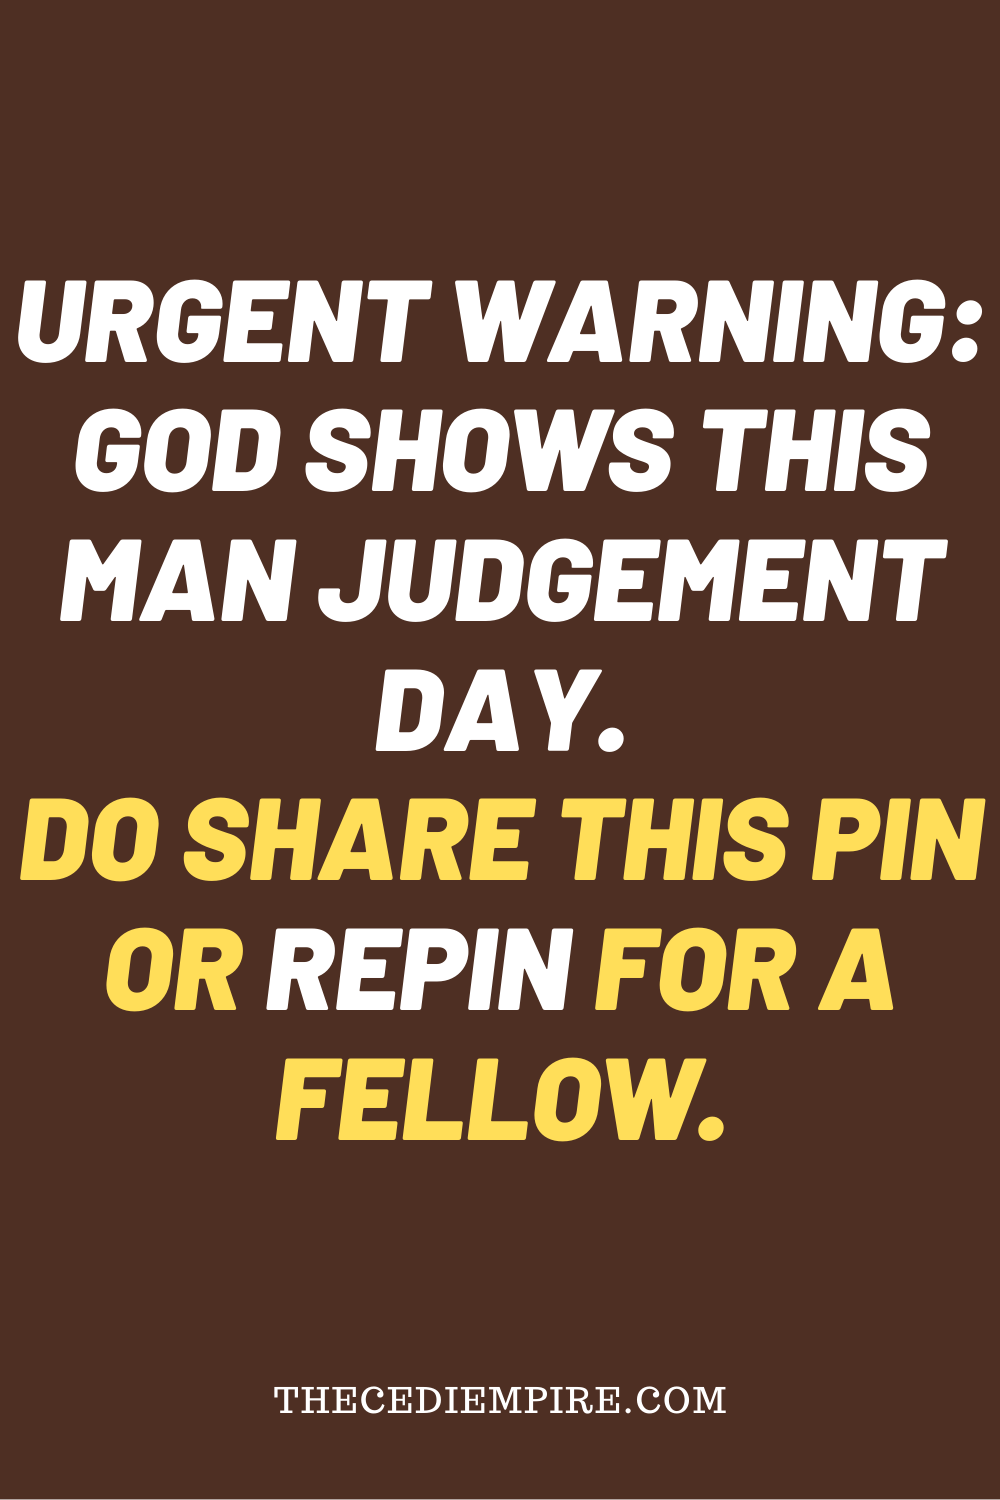 God Shows This Man Judgement Day. #Judgement #God #Jesus #catholicfaith #September2020 #Prayerinspiration #Powerful